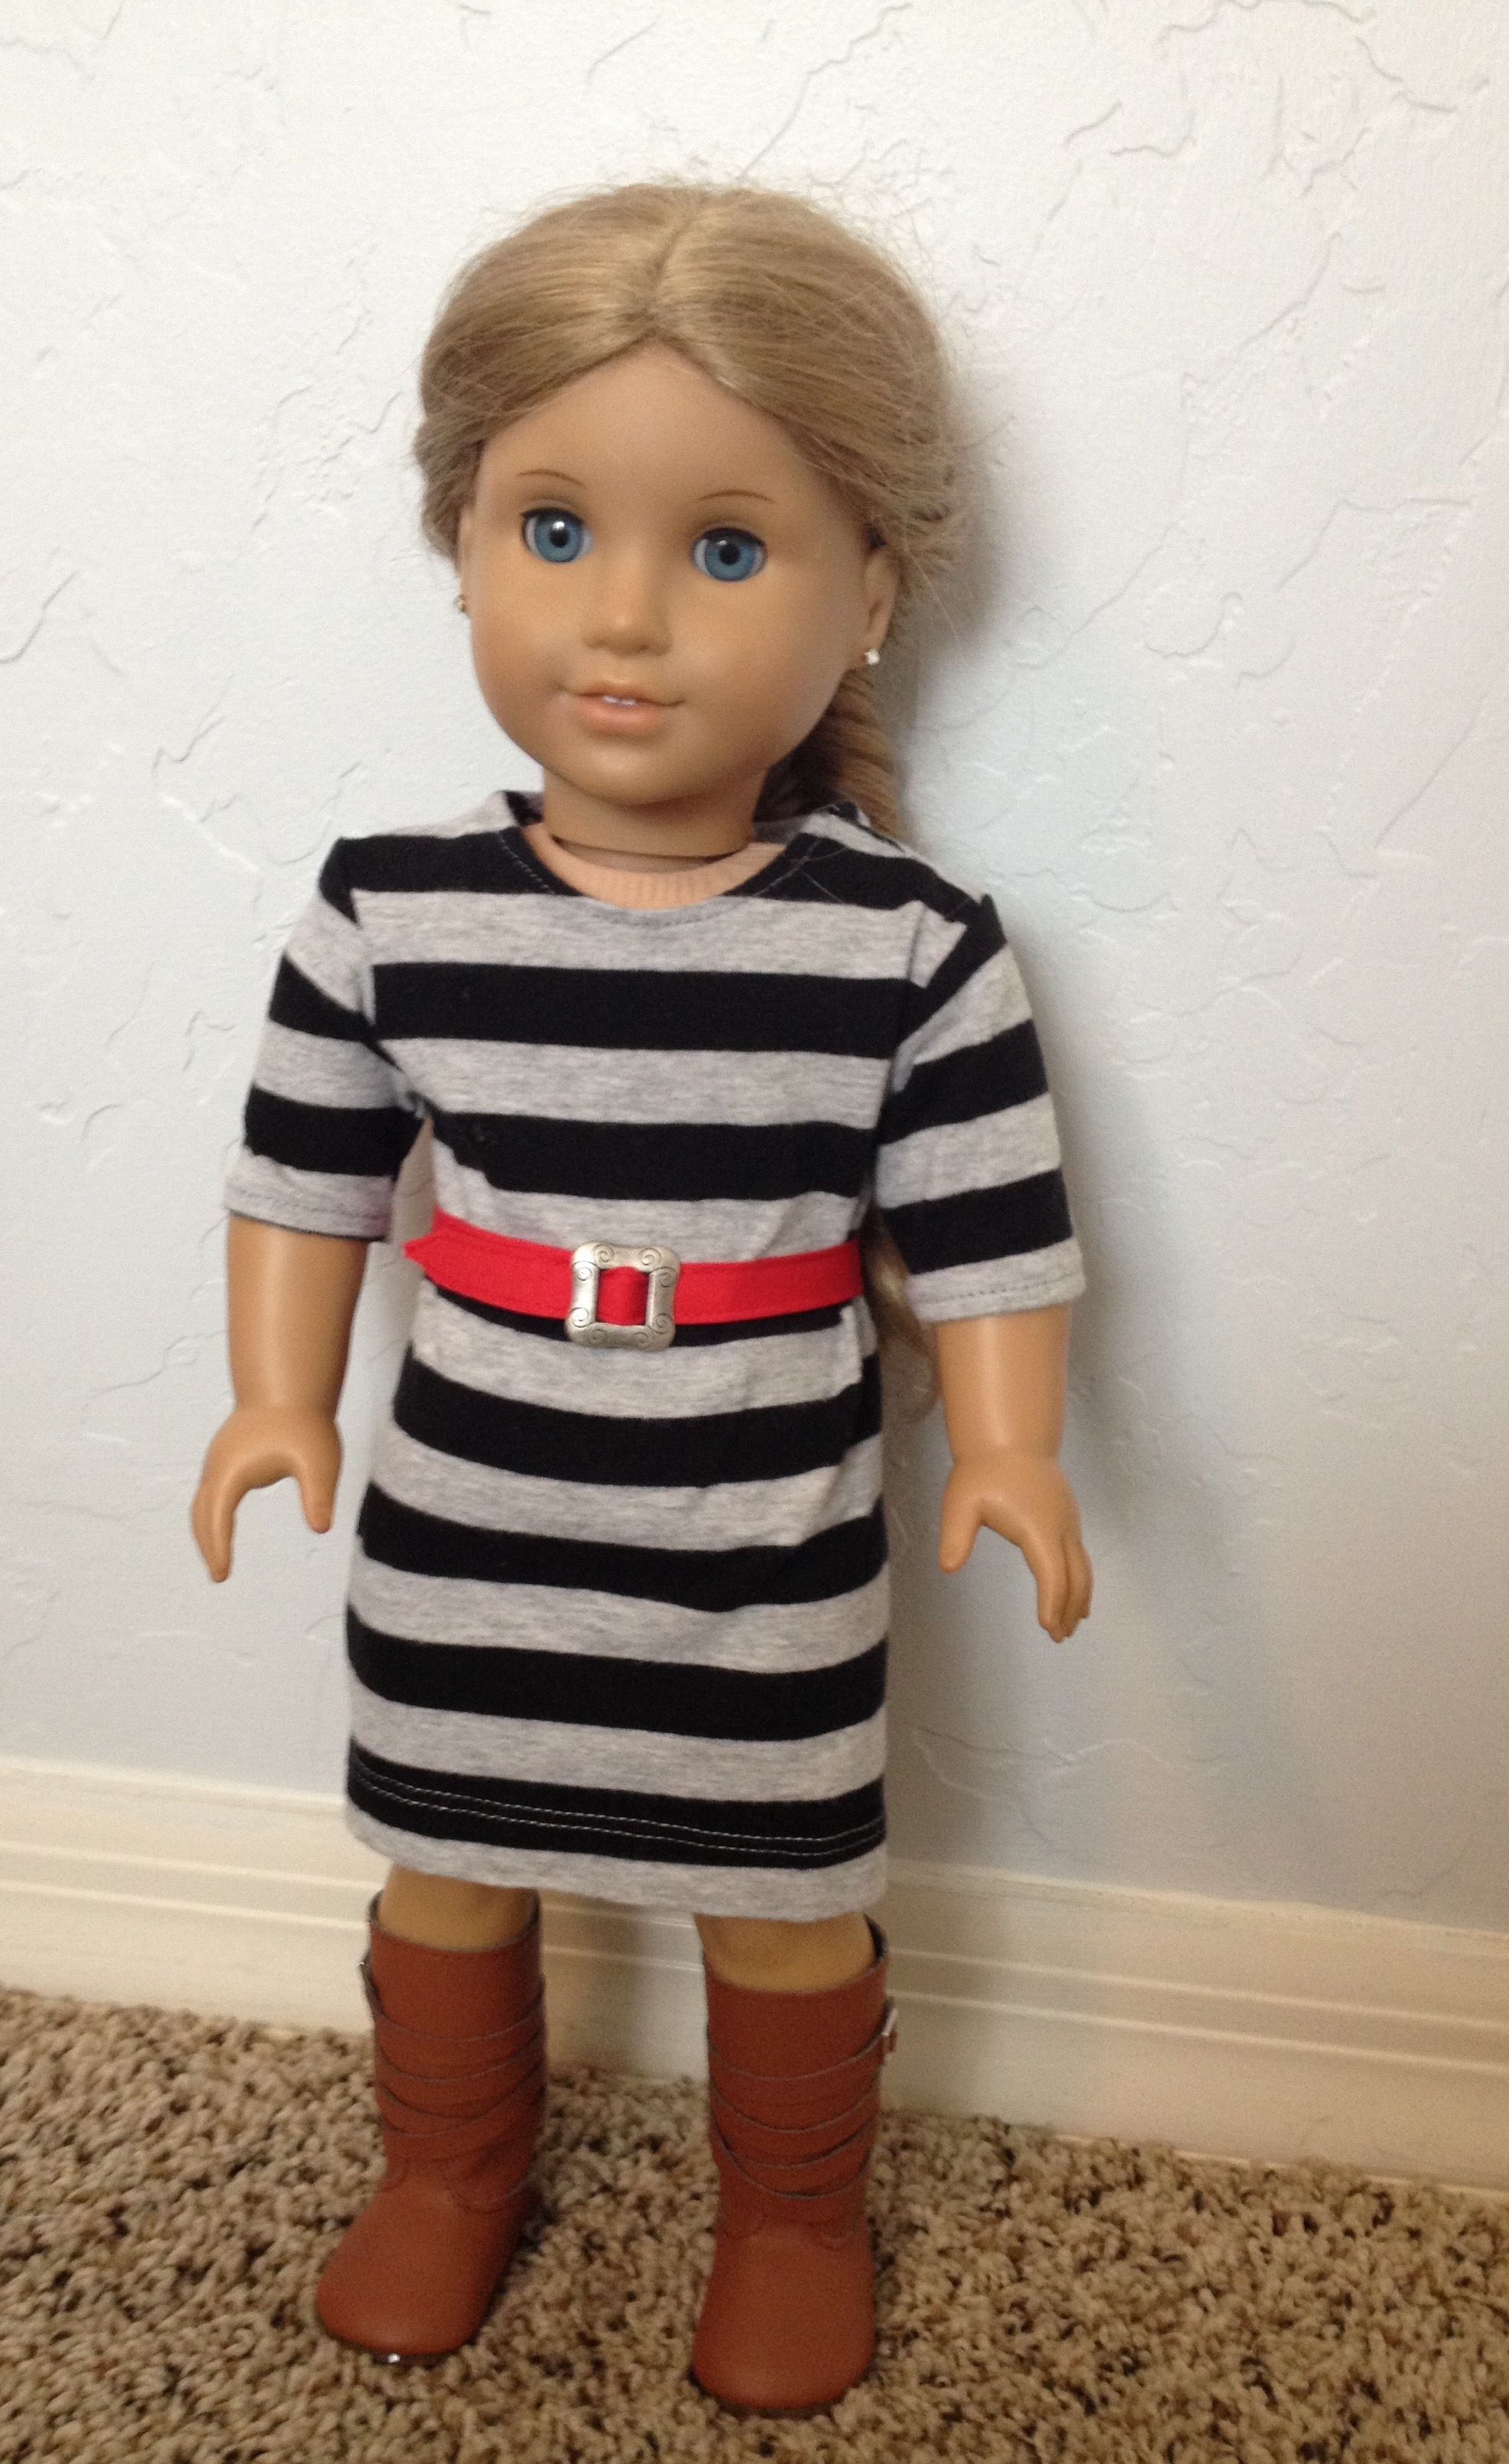 c7c1bd05eed3 American Girl Doll Basic Knit Dress Pattern and Tutorial